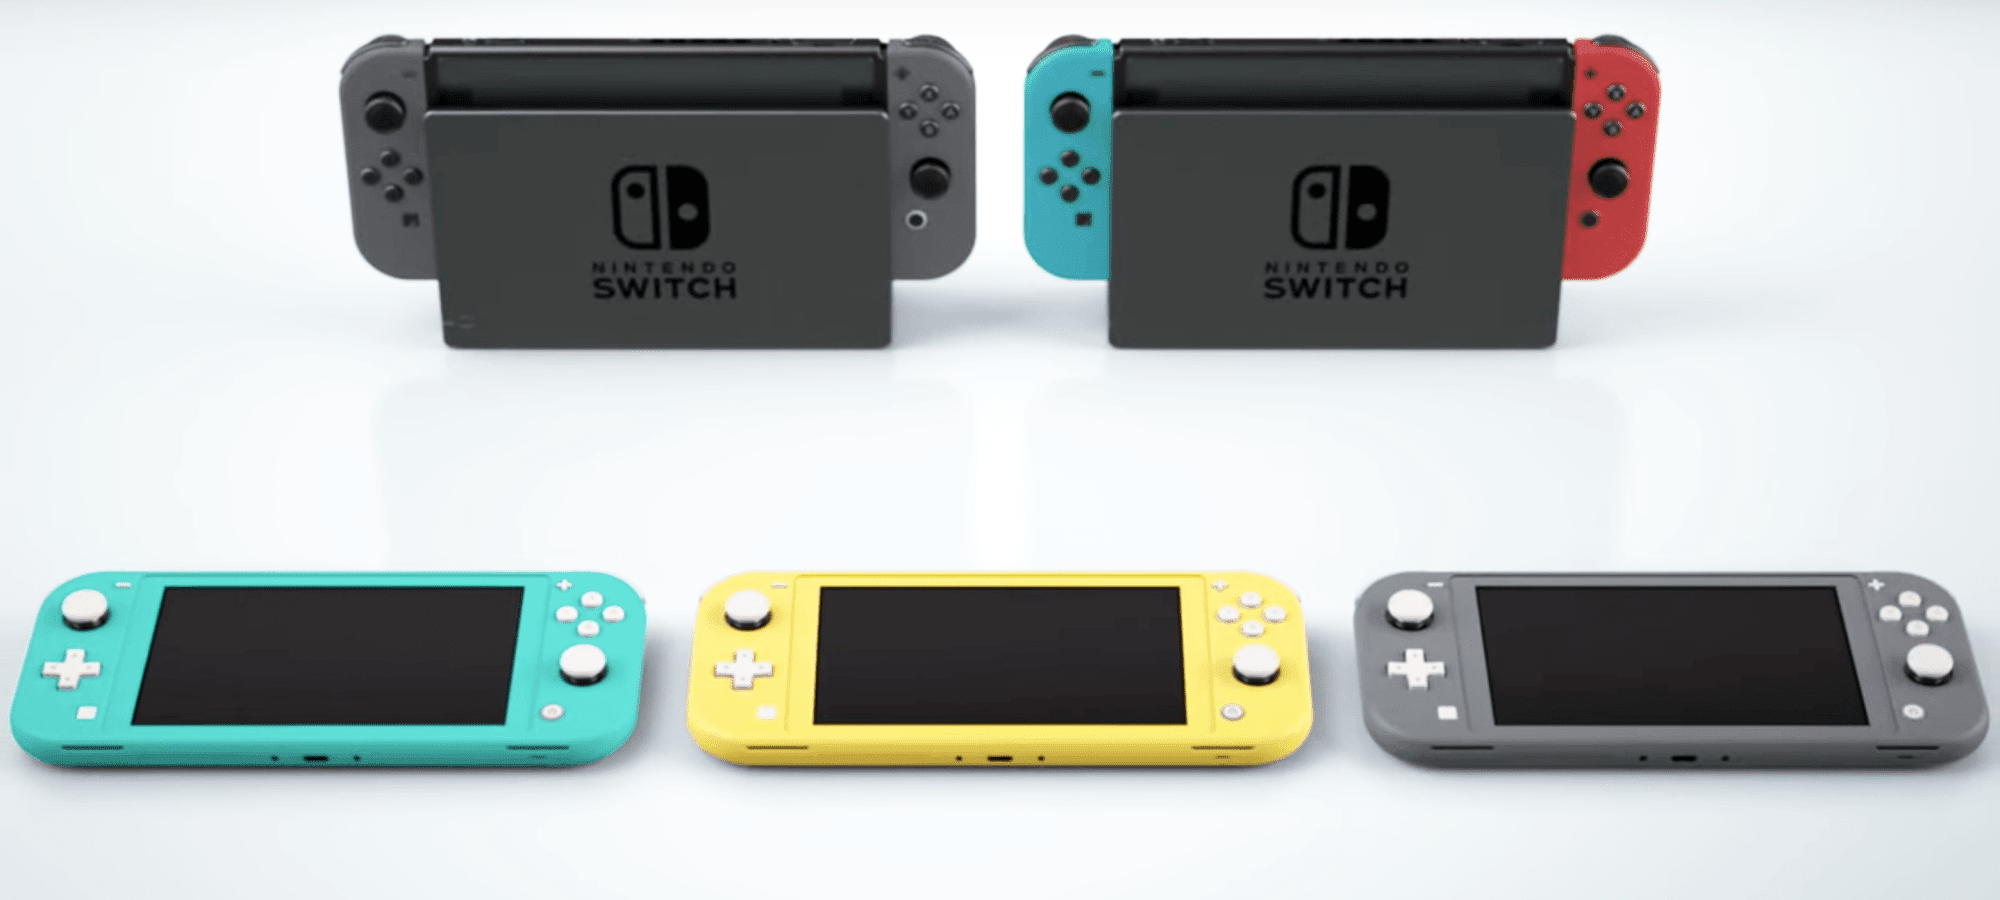 Resultado de imagem para Switch lite and original switch